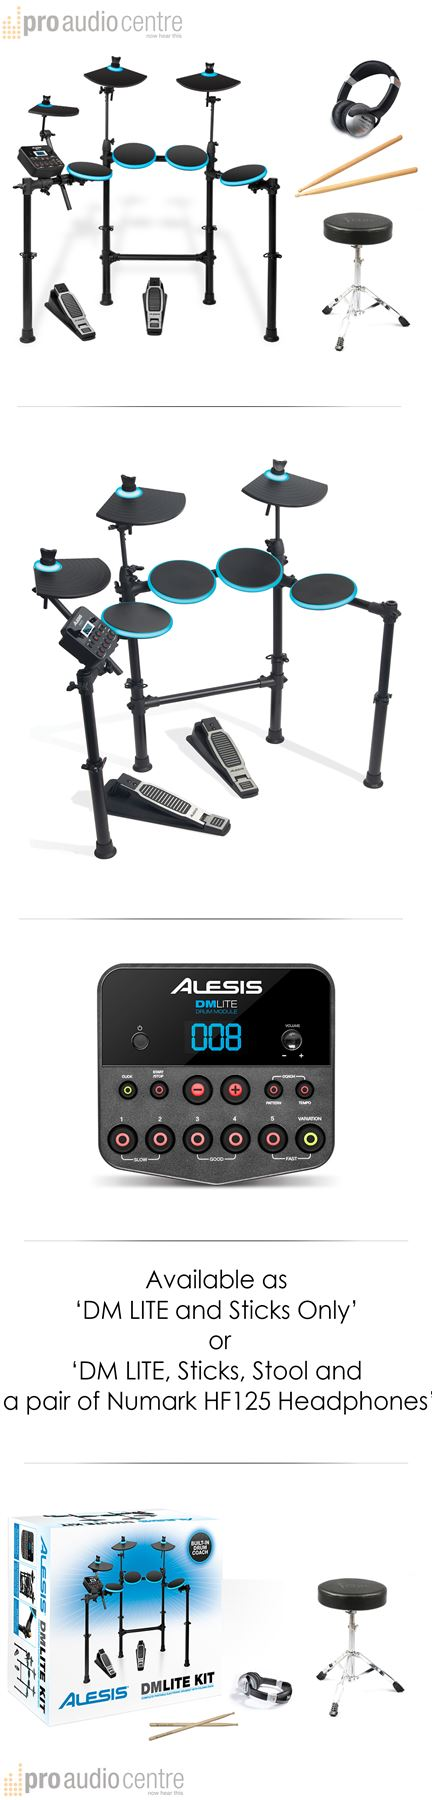 alesis dm lite electronic drum kit stool sticks headphones choose extras ebay. Black Bedroom Furniture Sets. Home Design Ideas